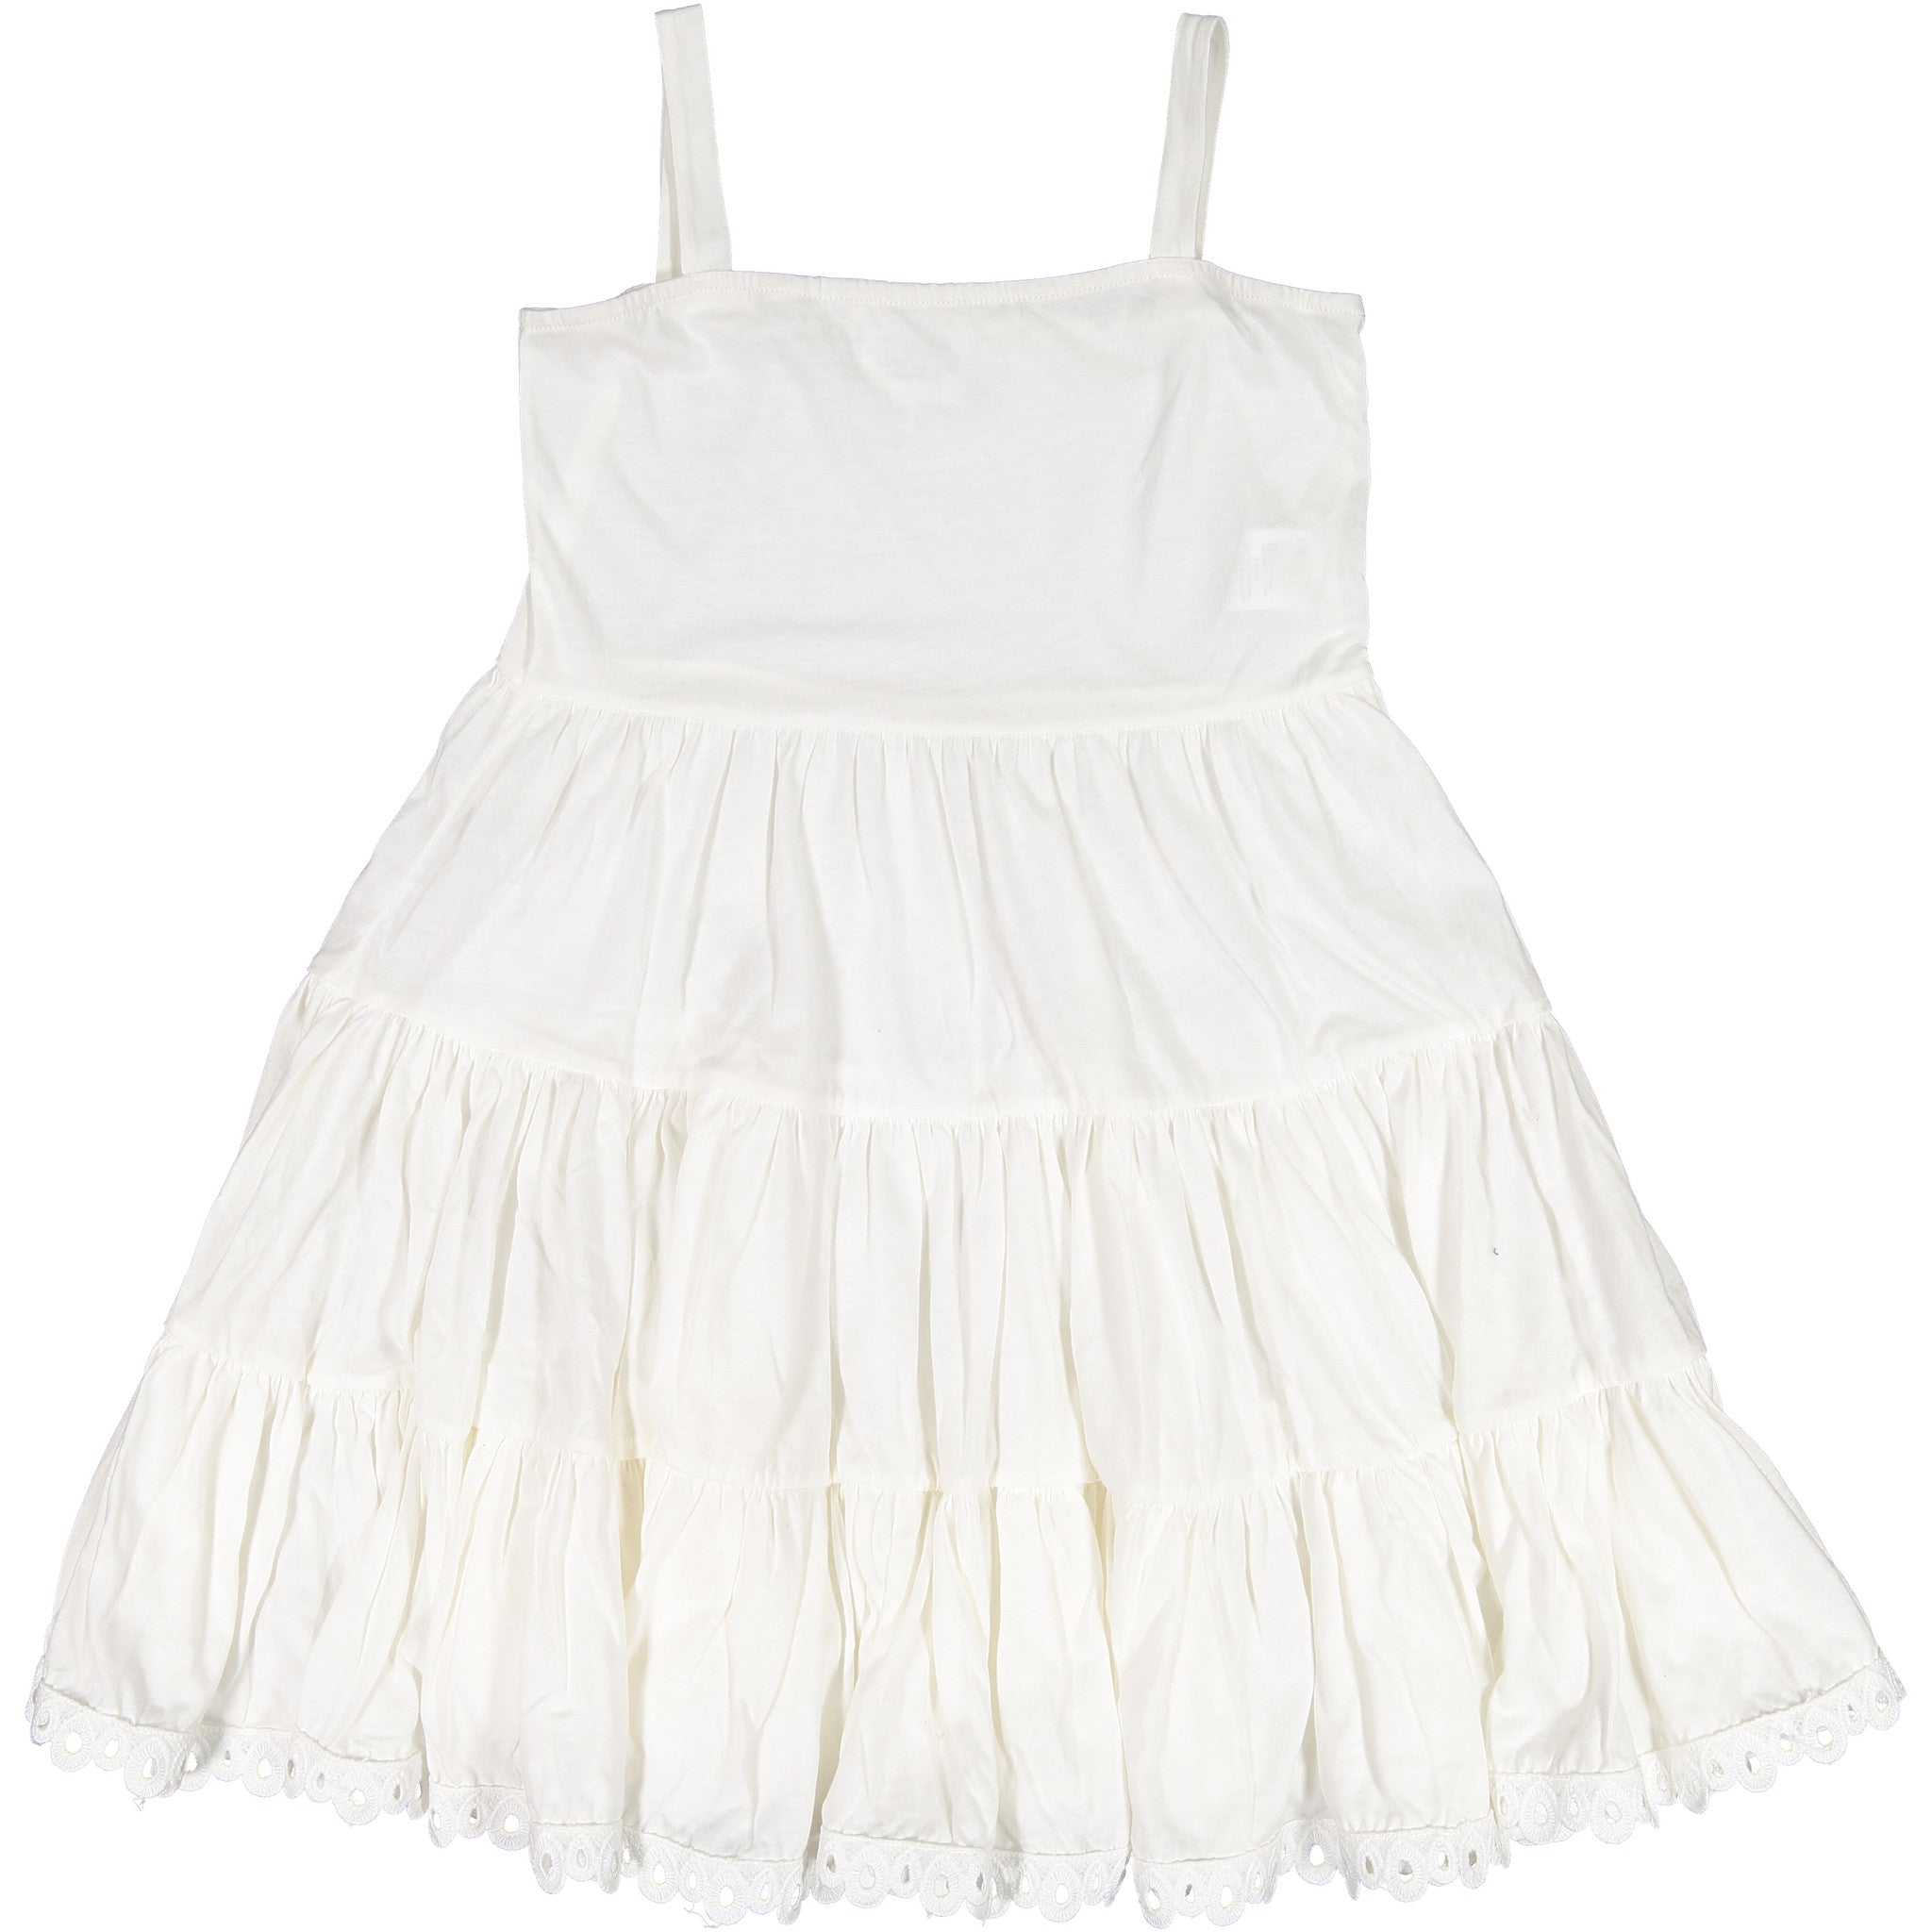 Atelier Barn White Tiered Dress - Ladida